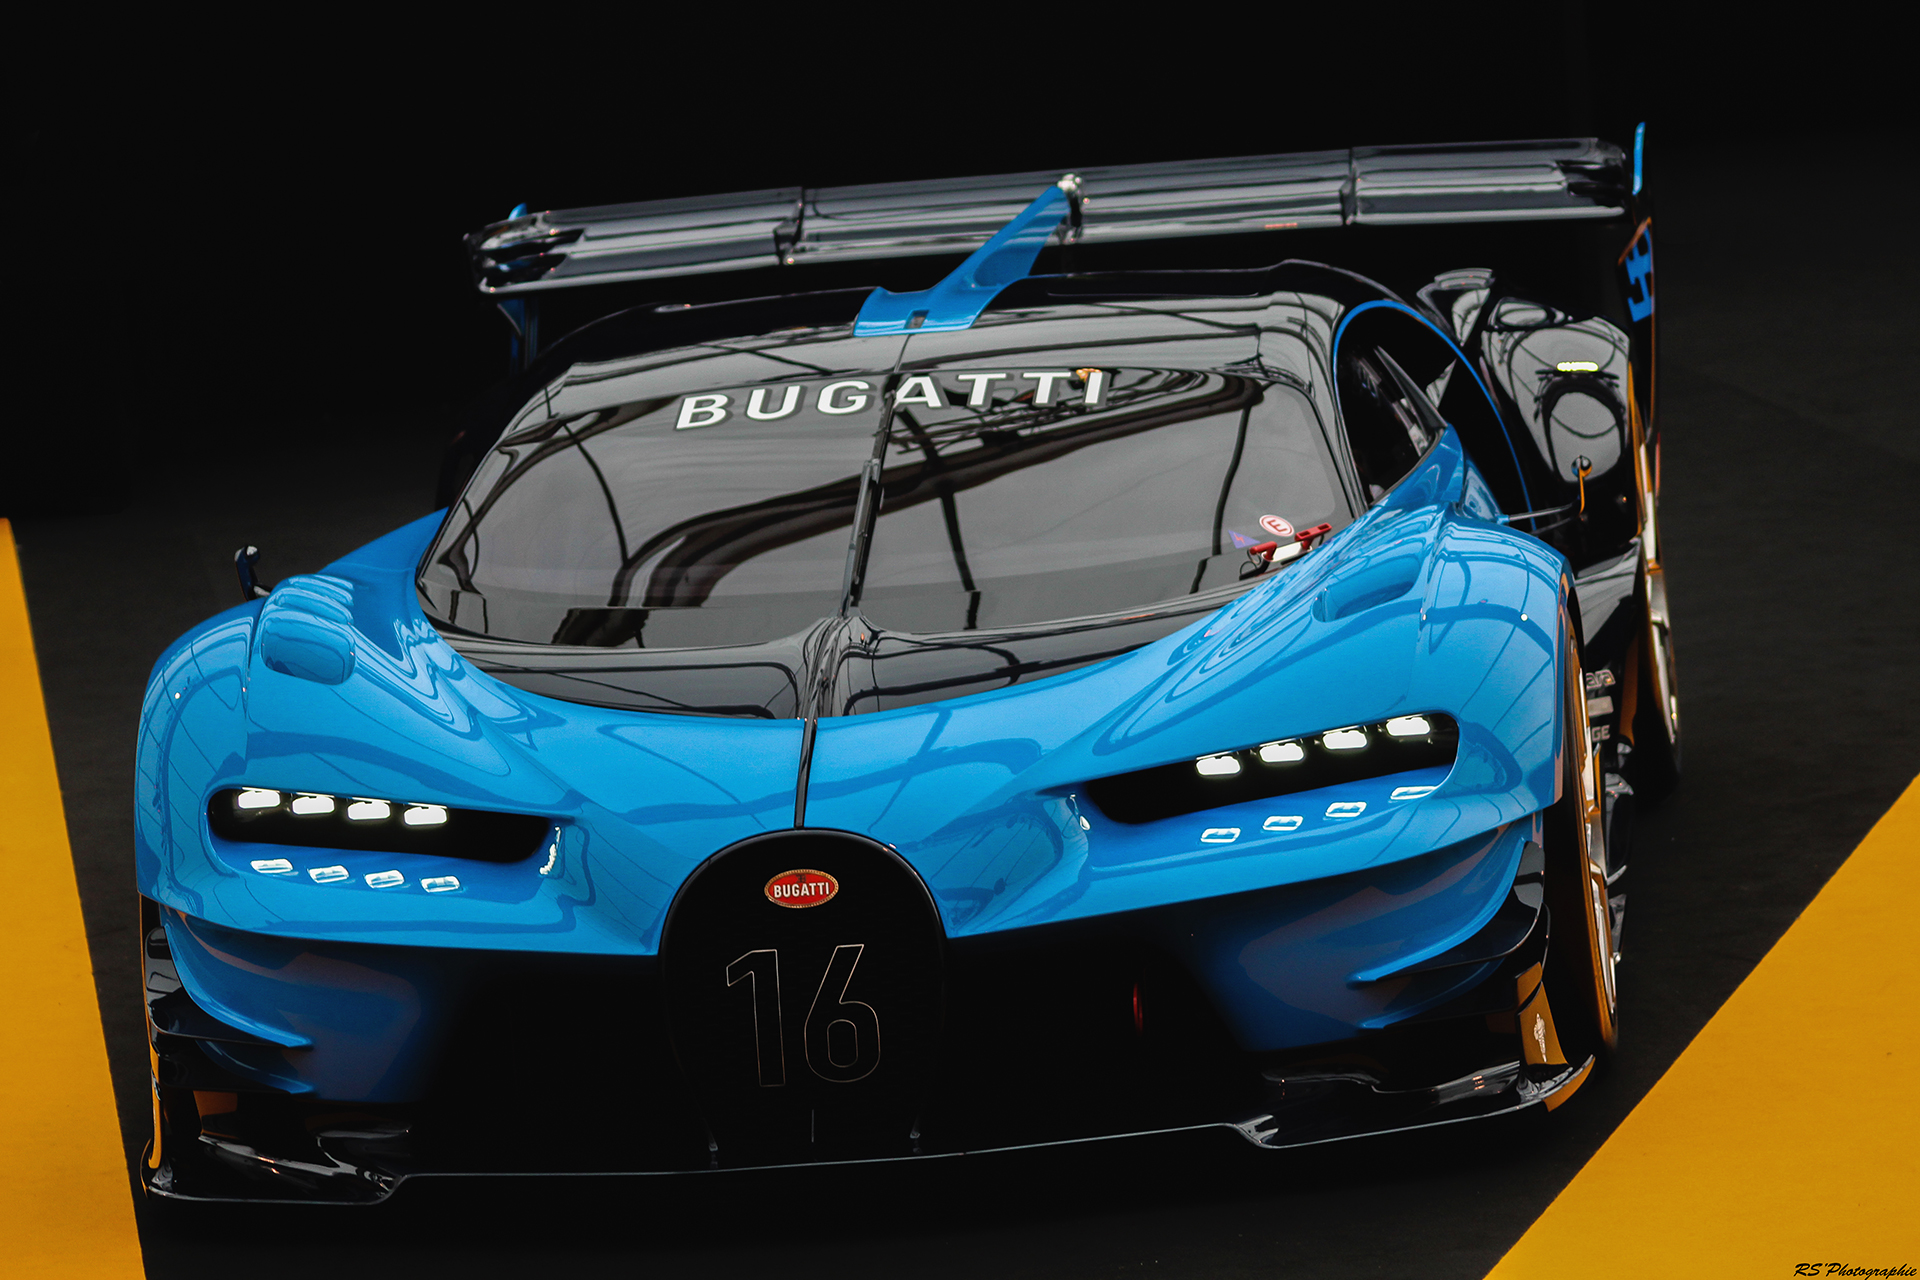 Bugatti Vision Gran Turismo - Exposition Concept cars 2016 - Arnaud Demasier RS Photographie